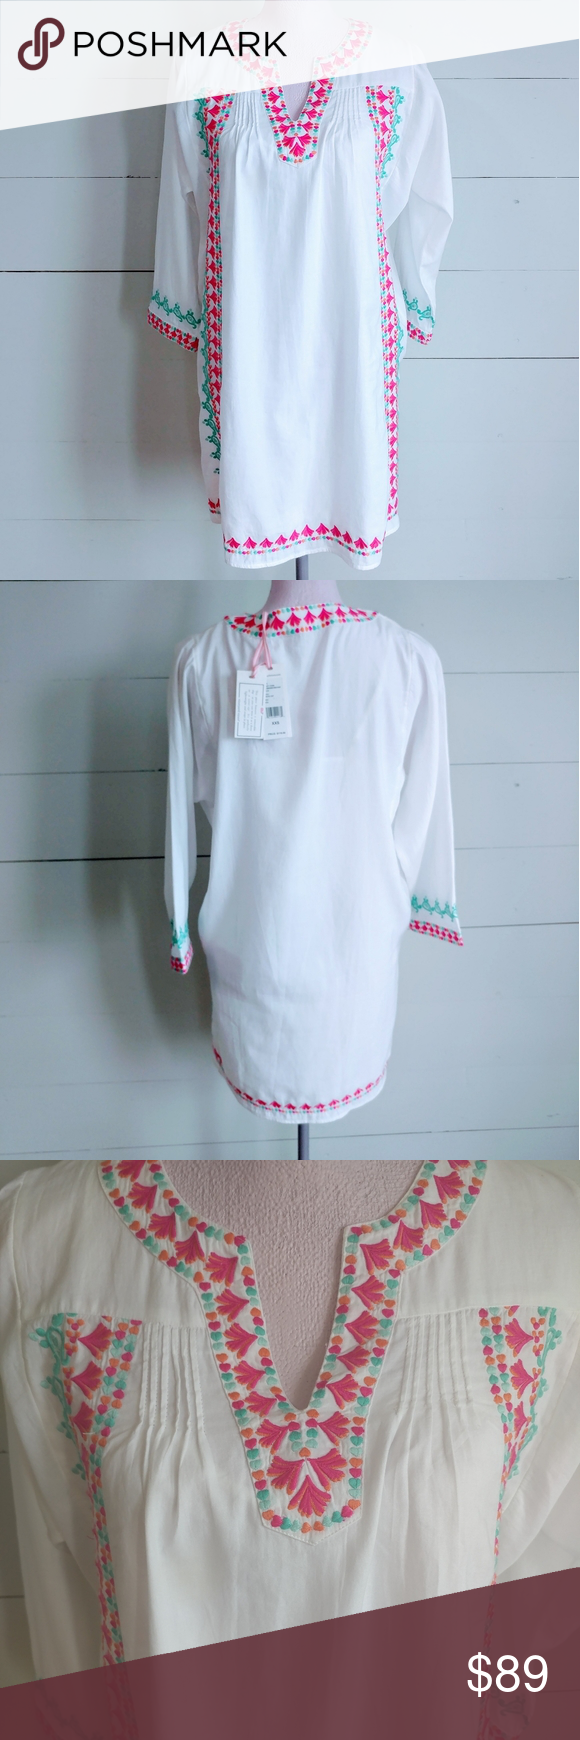 Vineyard Vines Embroidered Dress Embroidered Dress Vineyard Vines White Dress Dresses [ 1740 x 580 Pixel ]